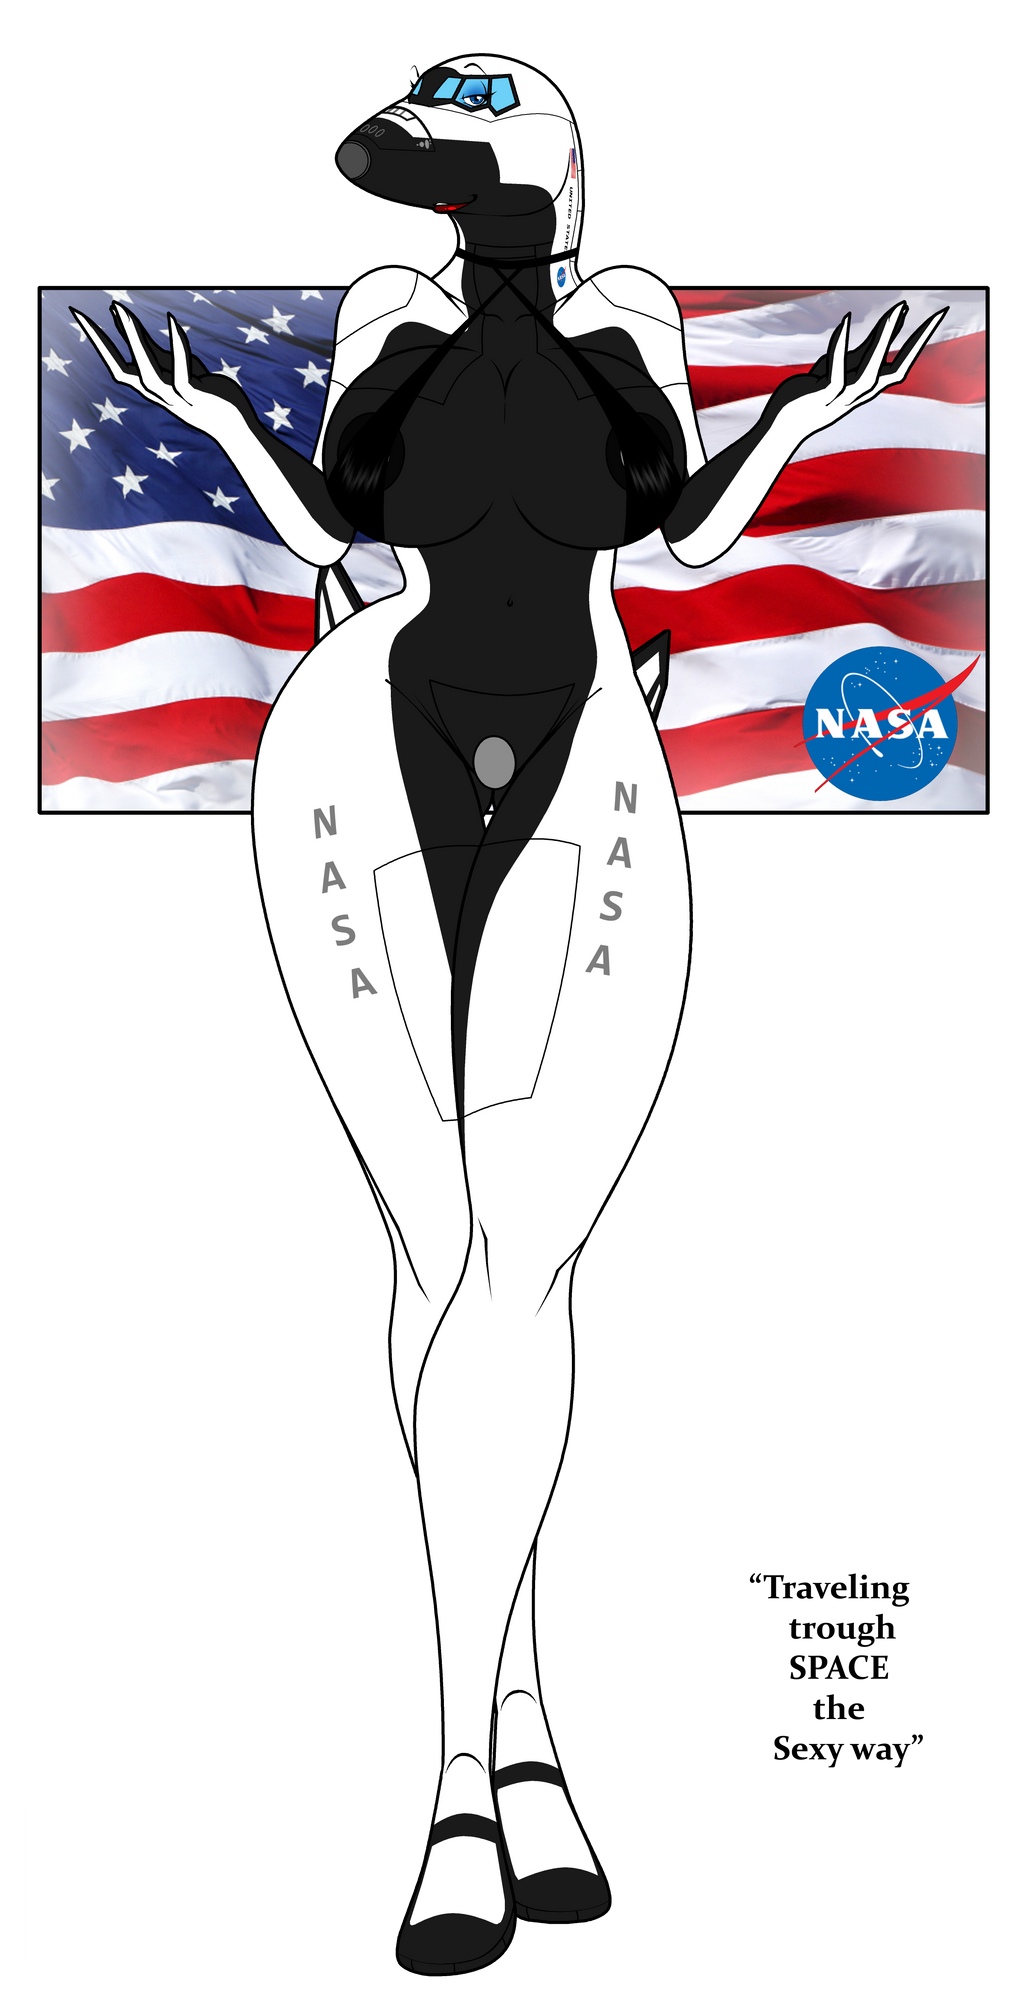 Space shuttle babe by wsache007